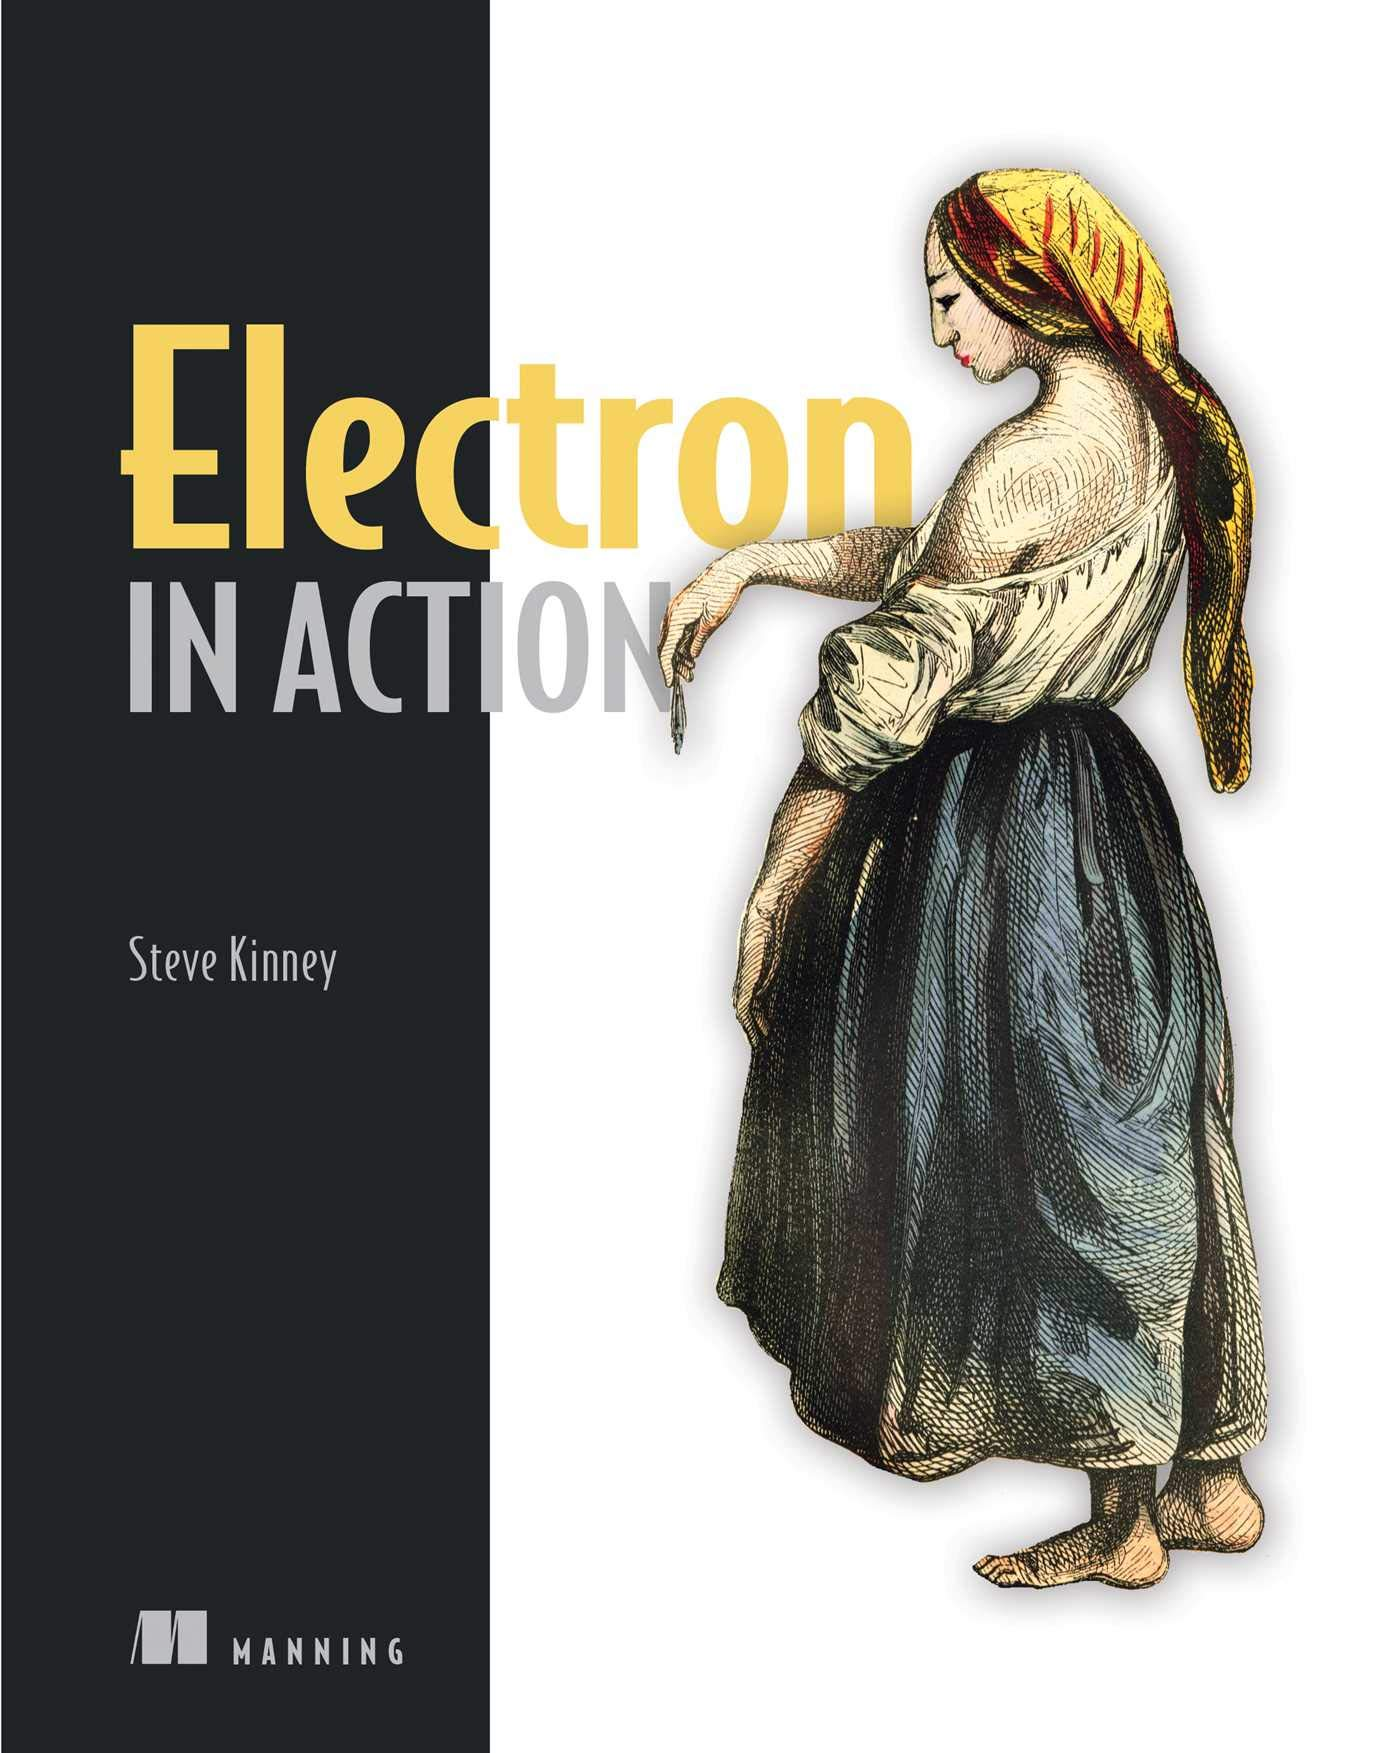 Electron in Action